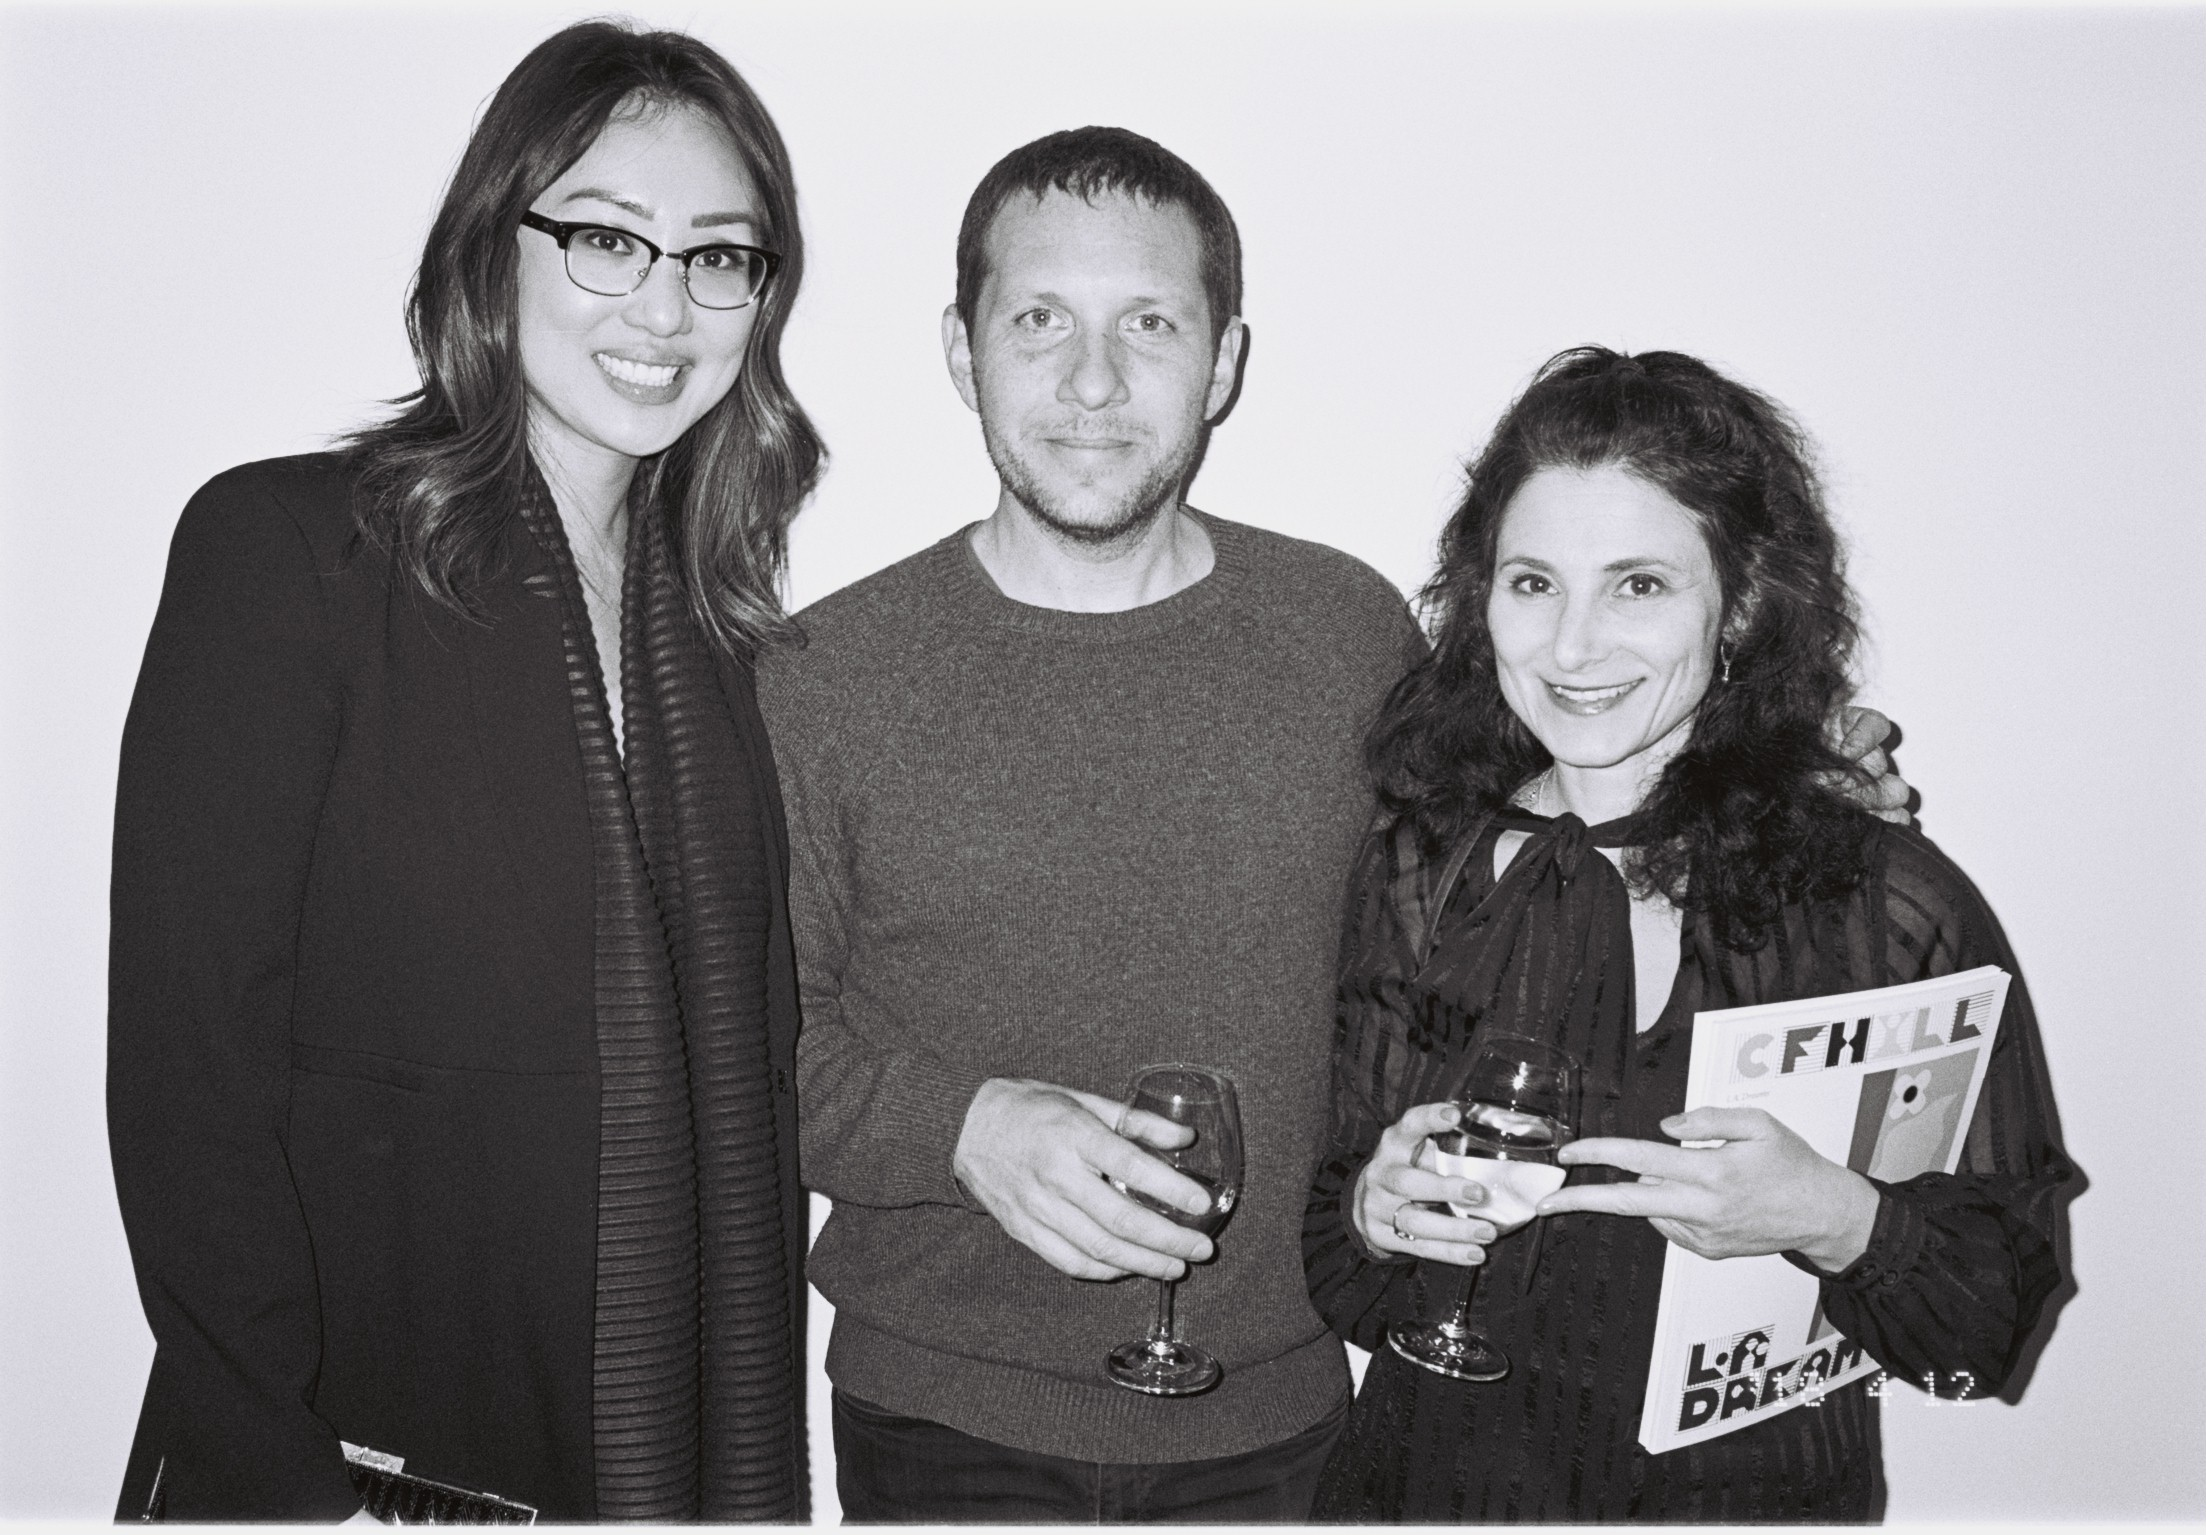 The curator Melanie Lum at the opening night next to one of the artists, Joshua Nathanson and our editor Paulina Sokolow. Photo: Ivan Nunez.